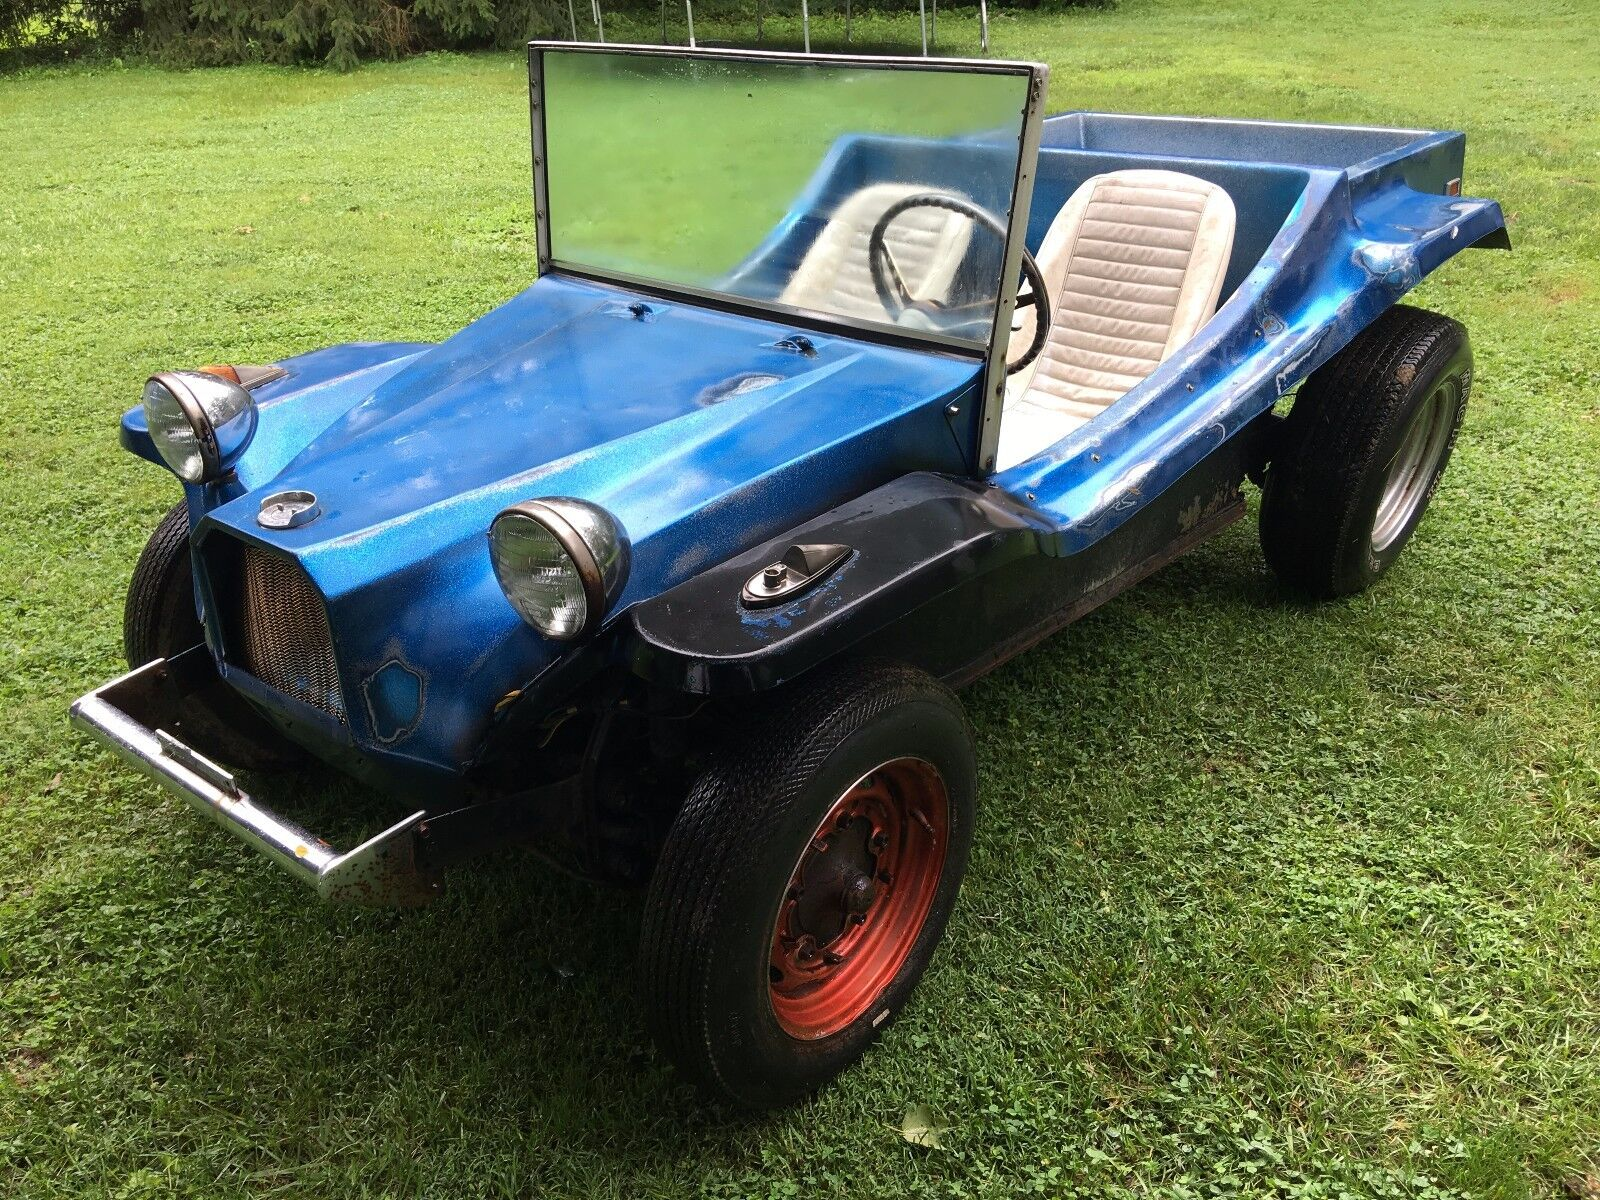 vw beach buggy dune buggy 4 speed father and son project. Black Bedroom Furniture Sets. Home Design Ideas